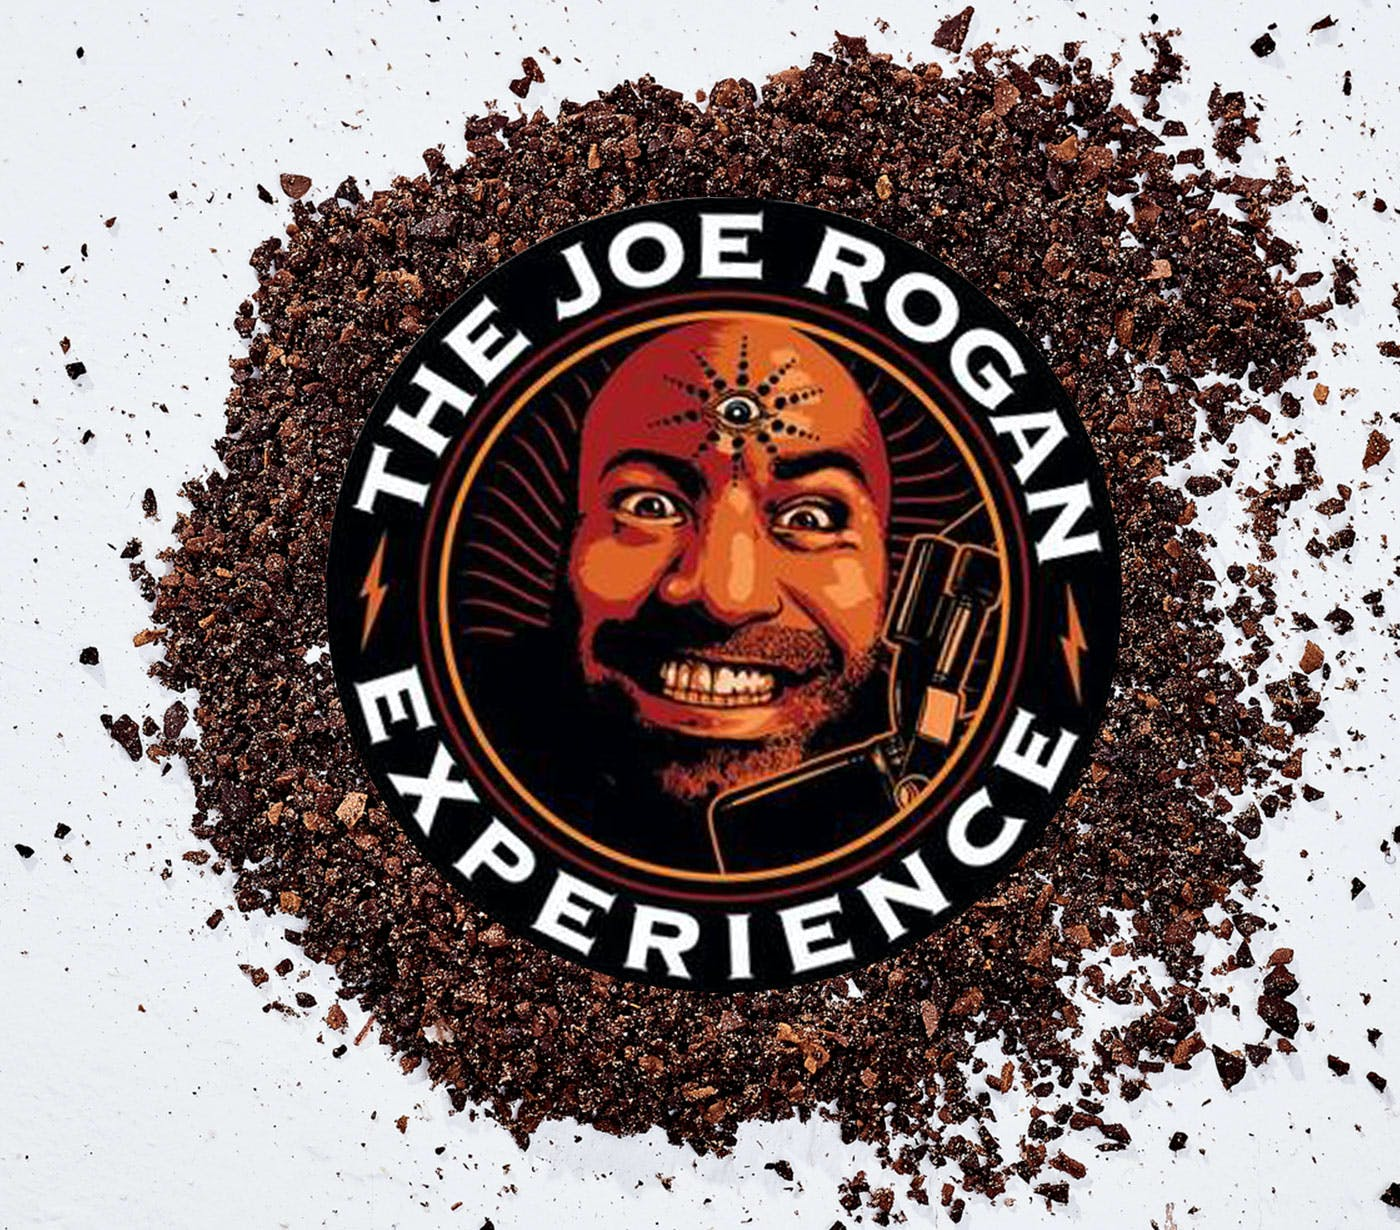 Joe Rogan Four Sigmatic